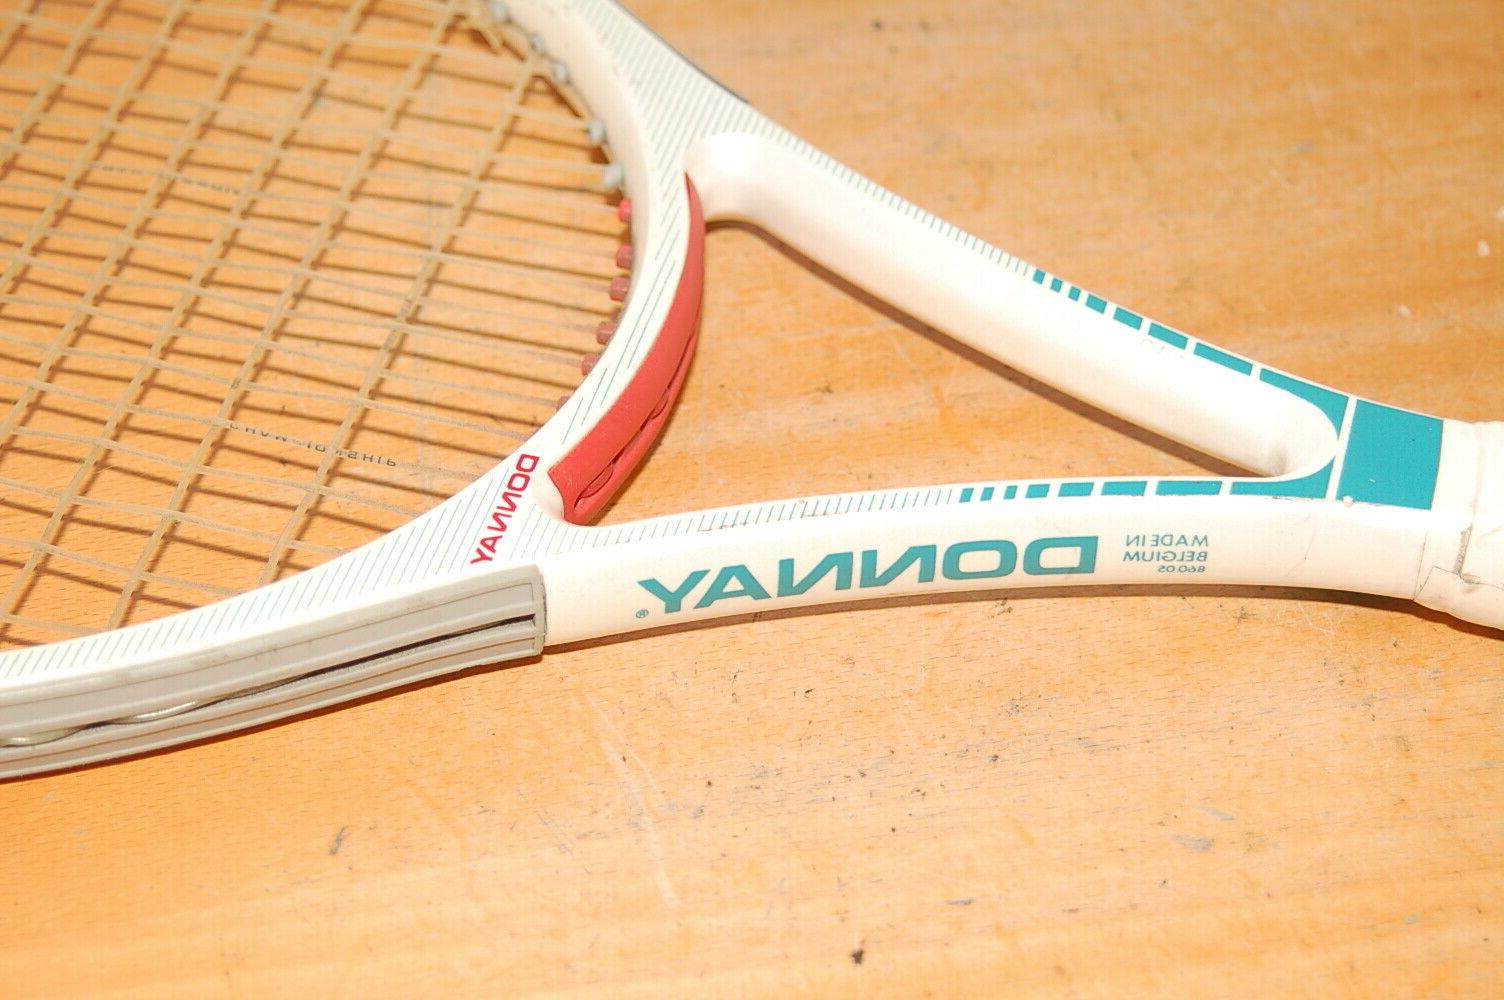 Donnay Carbon Tennis Racket 4 1/4